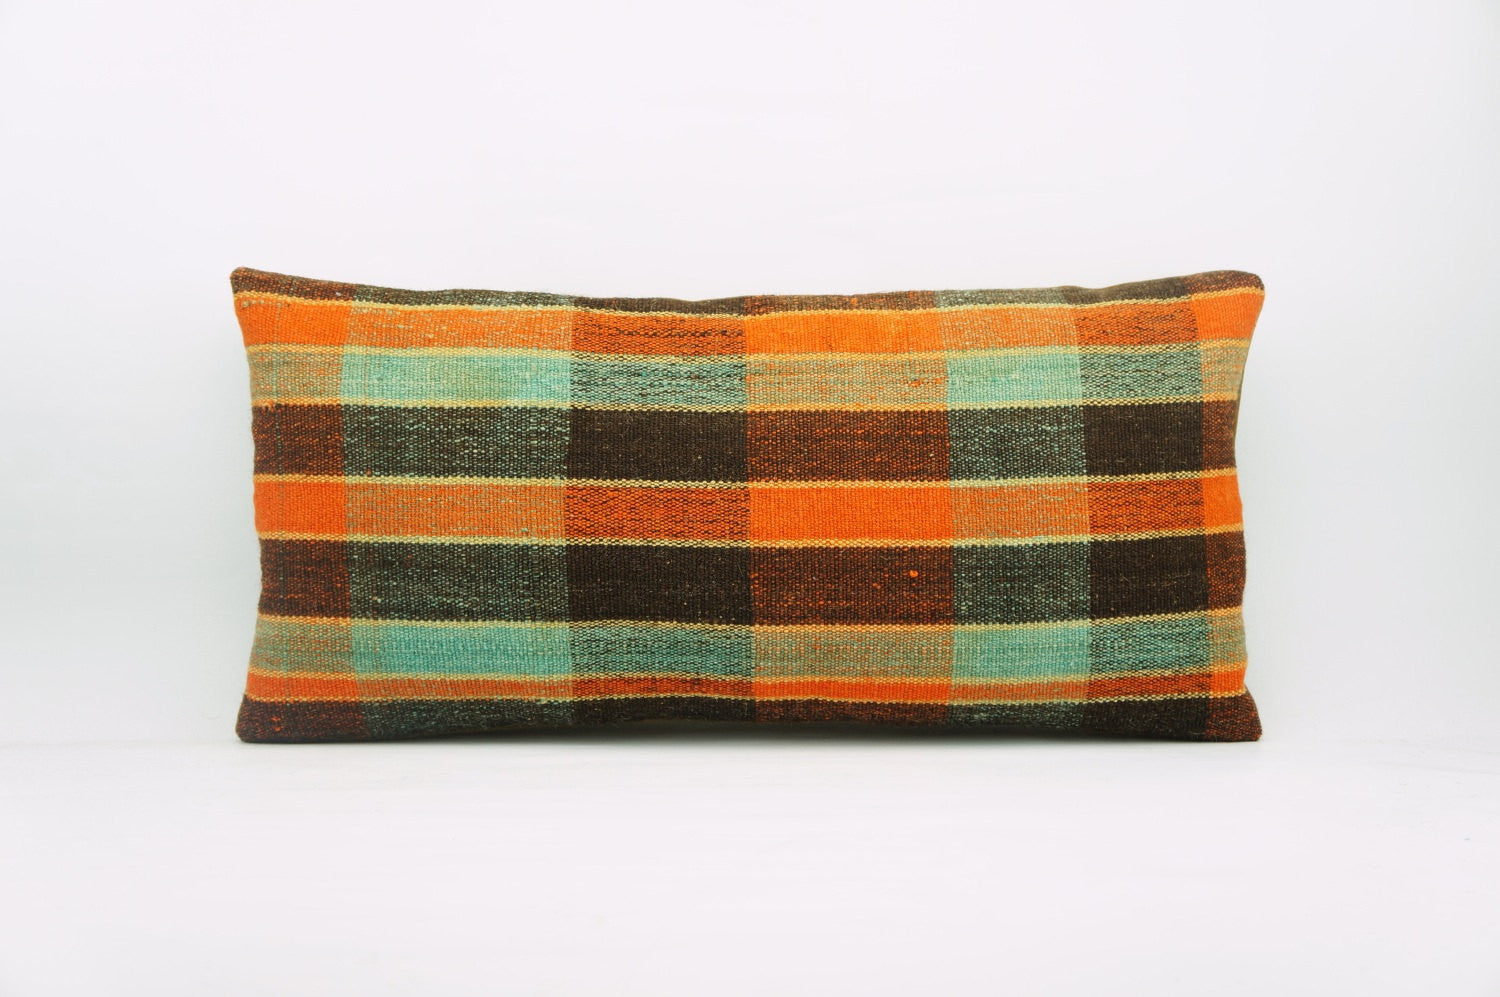 12x24 Vintage Hand Woven Kilim Pillow Lumbar Bohemian pillow case, Modern home decor  orange green brown  striped 969 - kilimpillowstore  - 1